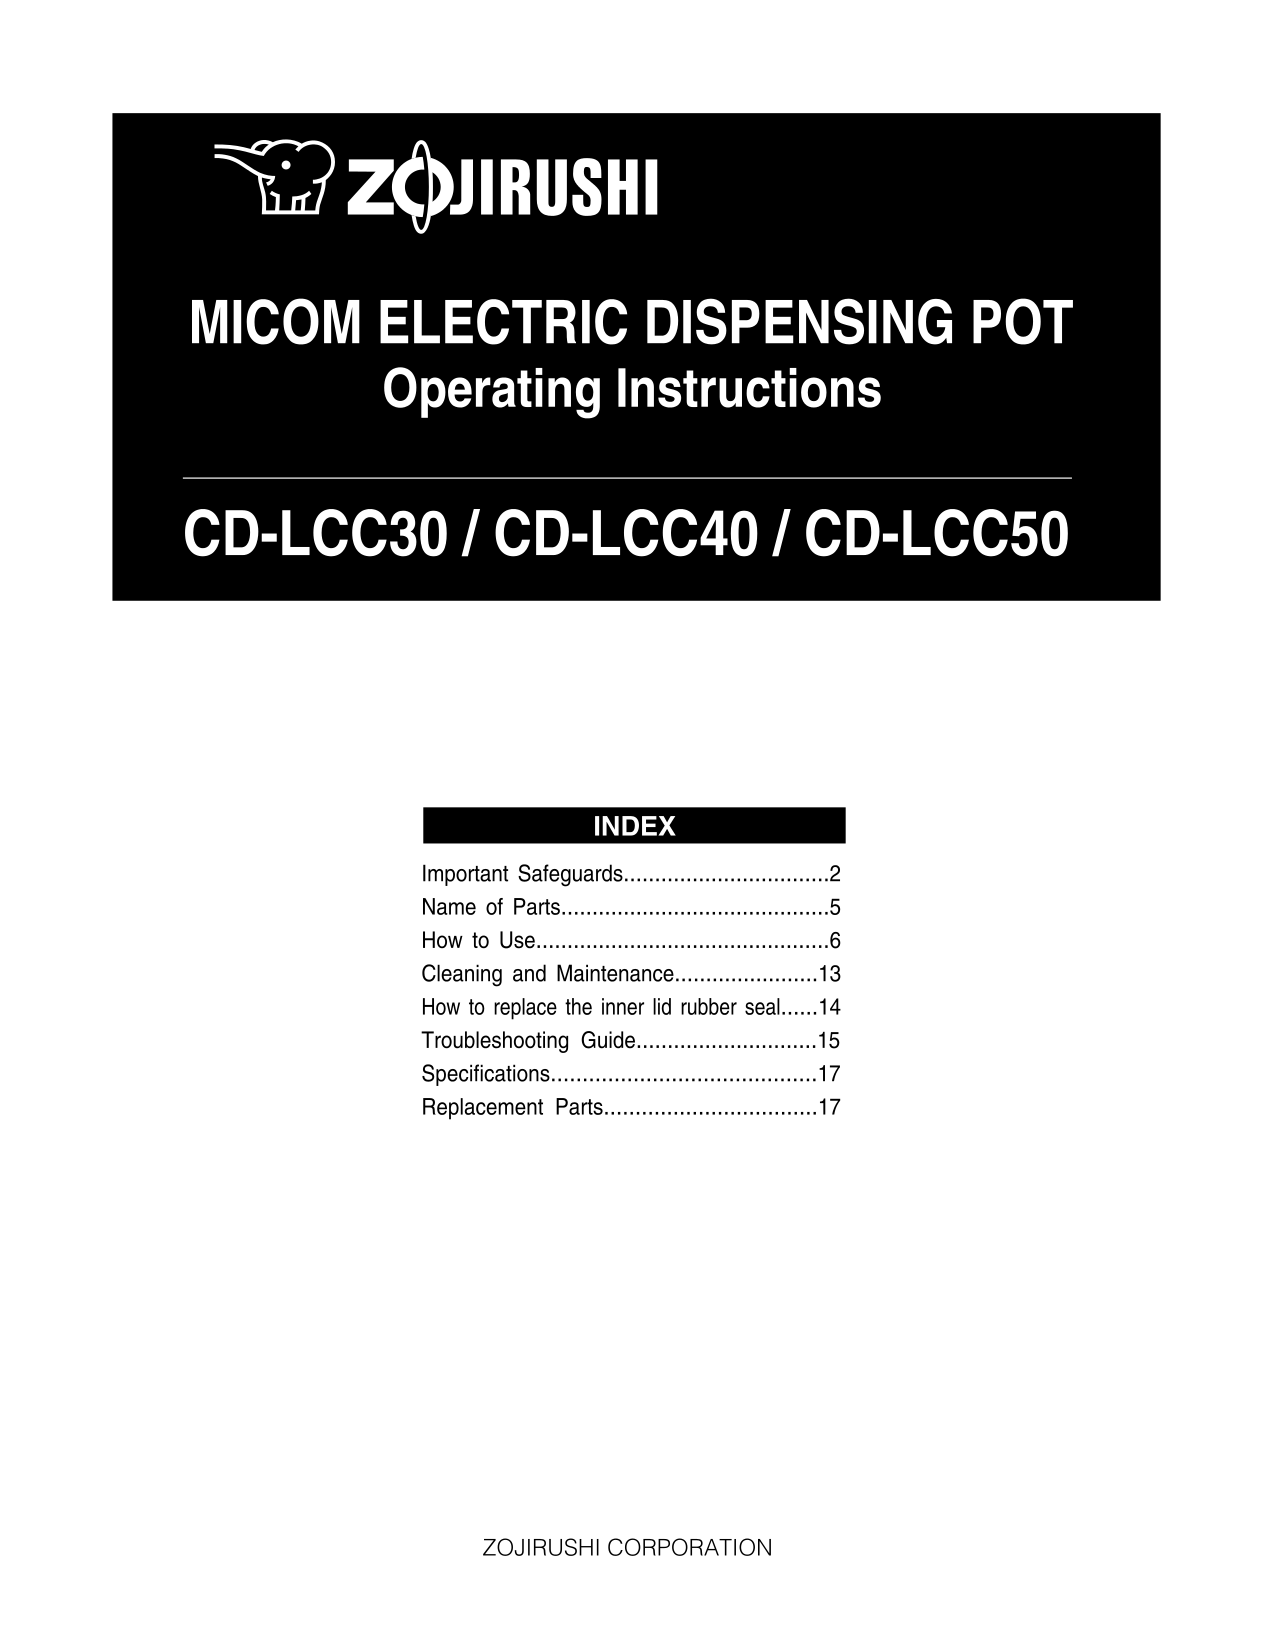 pdf for Zojirushi Other CD-LCC40 Electric Dispensing Pot manual